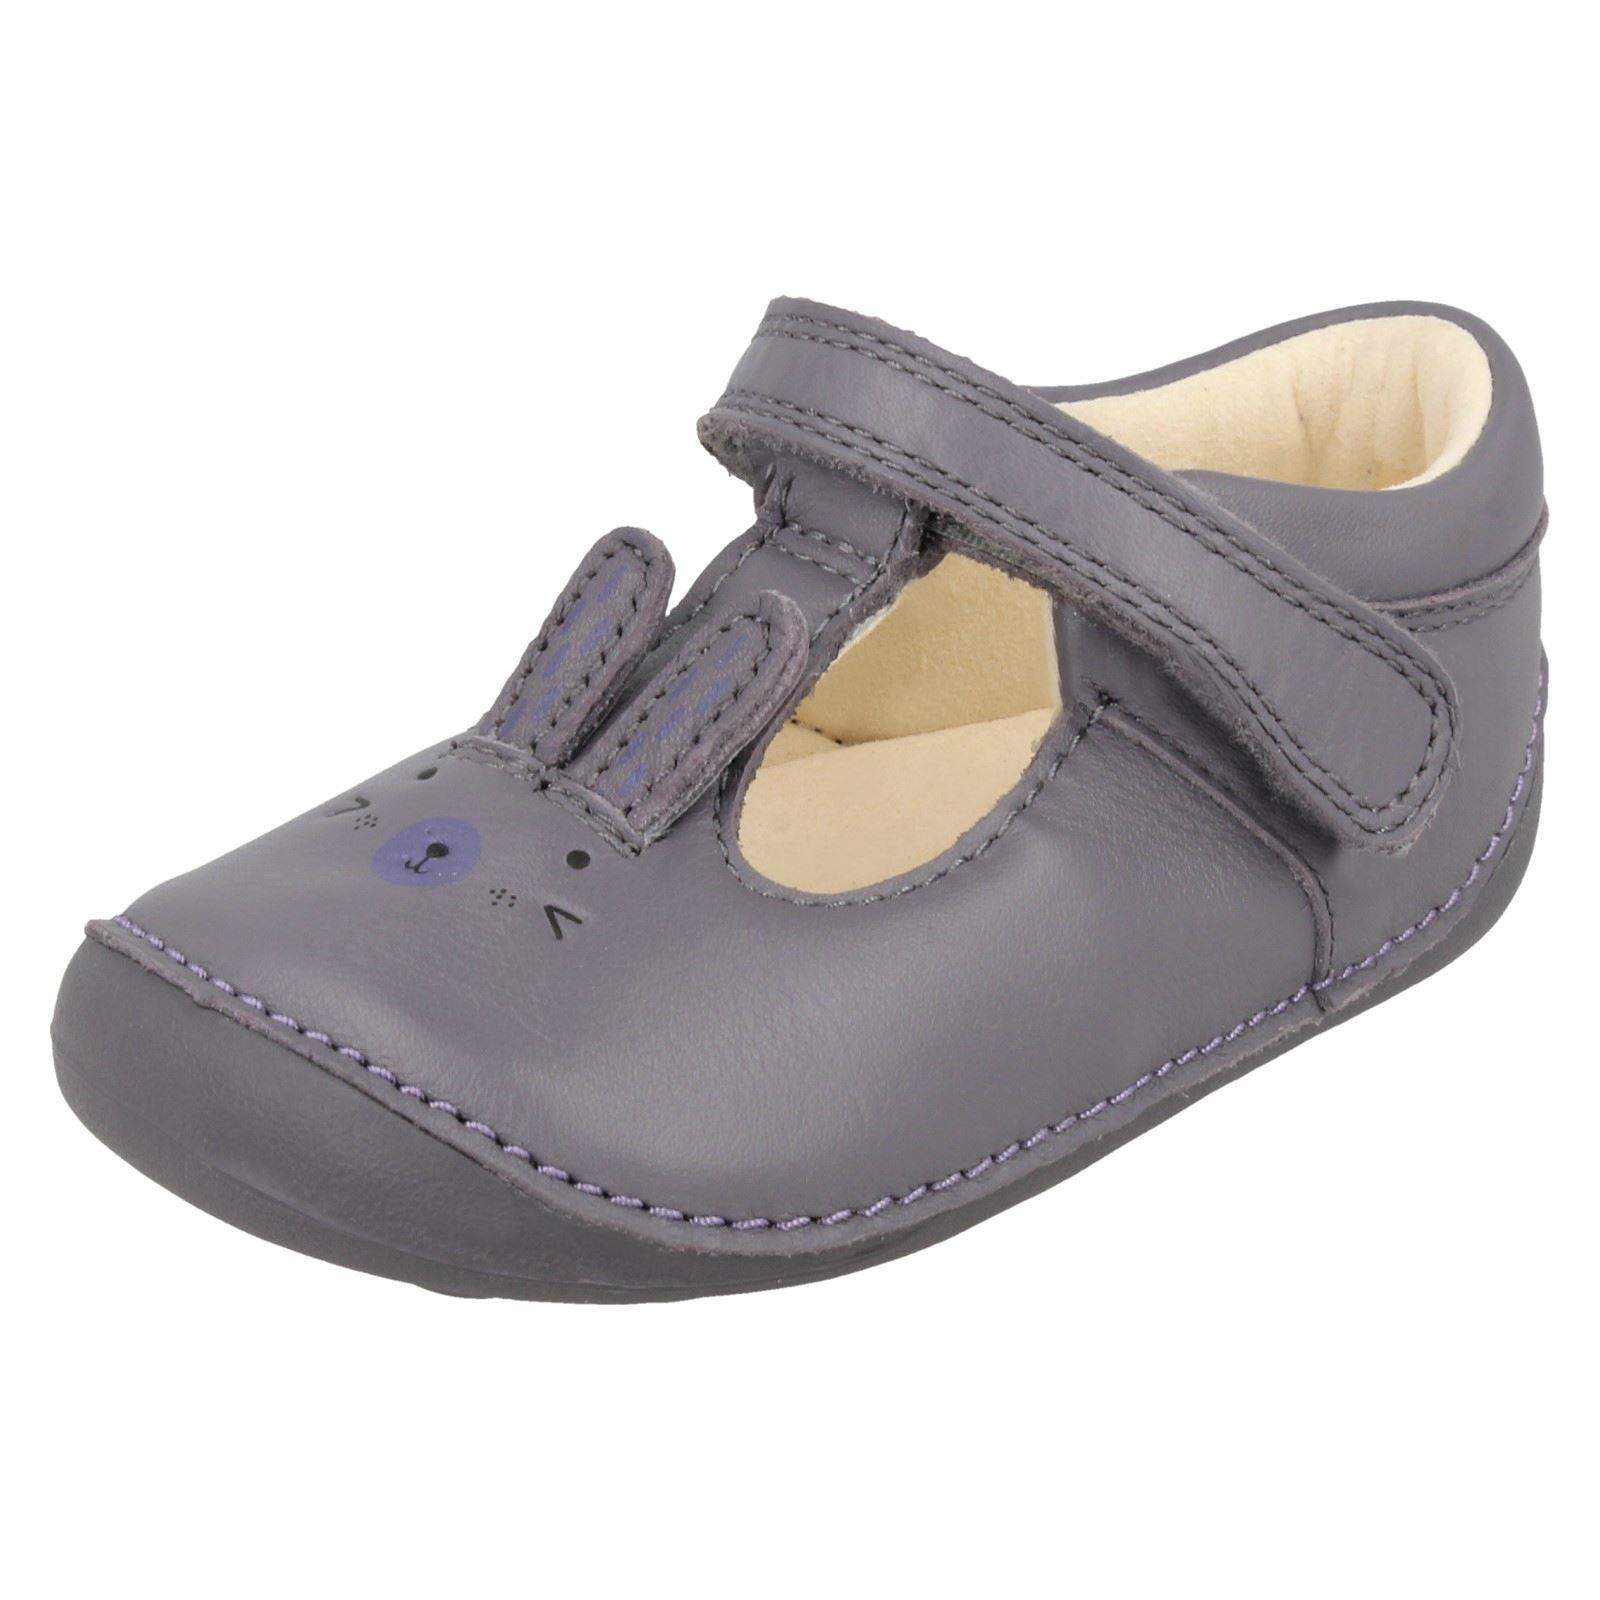 Girls Clarks Little Glo First Shoes With Rabbit Design